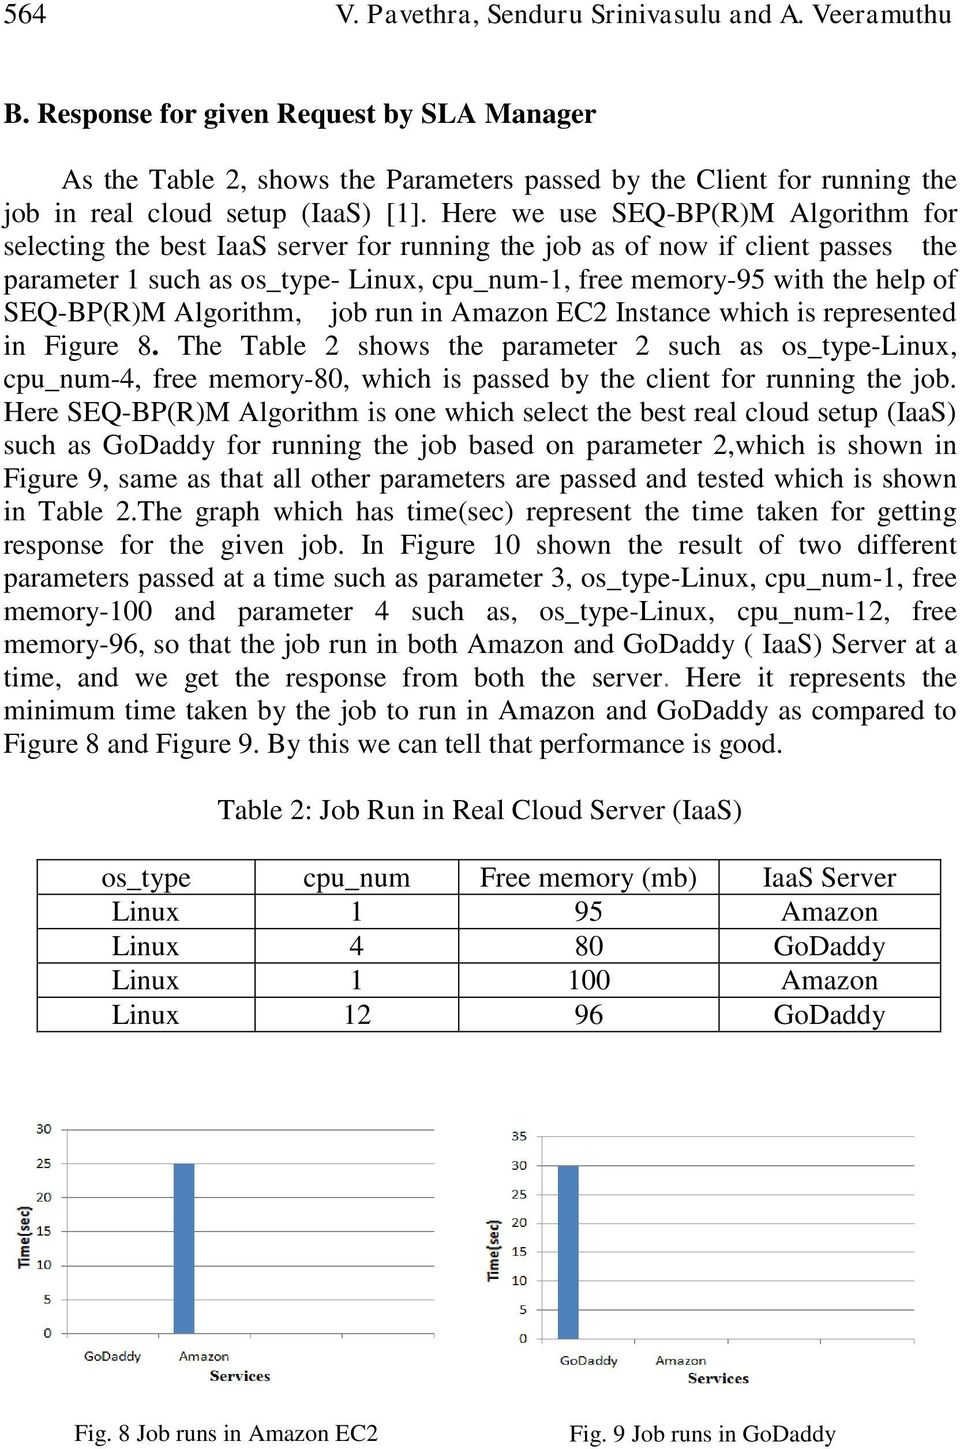 Here we use SEQ-BP(R)M Algorithm for selecting the best IaaS server for running the job as of now if client passes the parameter 1 such as os_type- Linux, cpu_num-1, free memory-95 with the help of